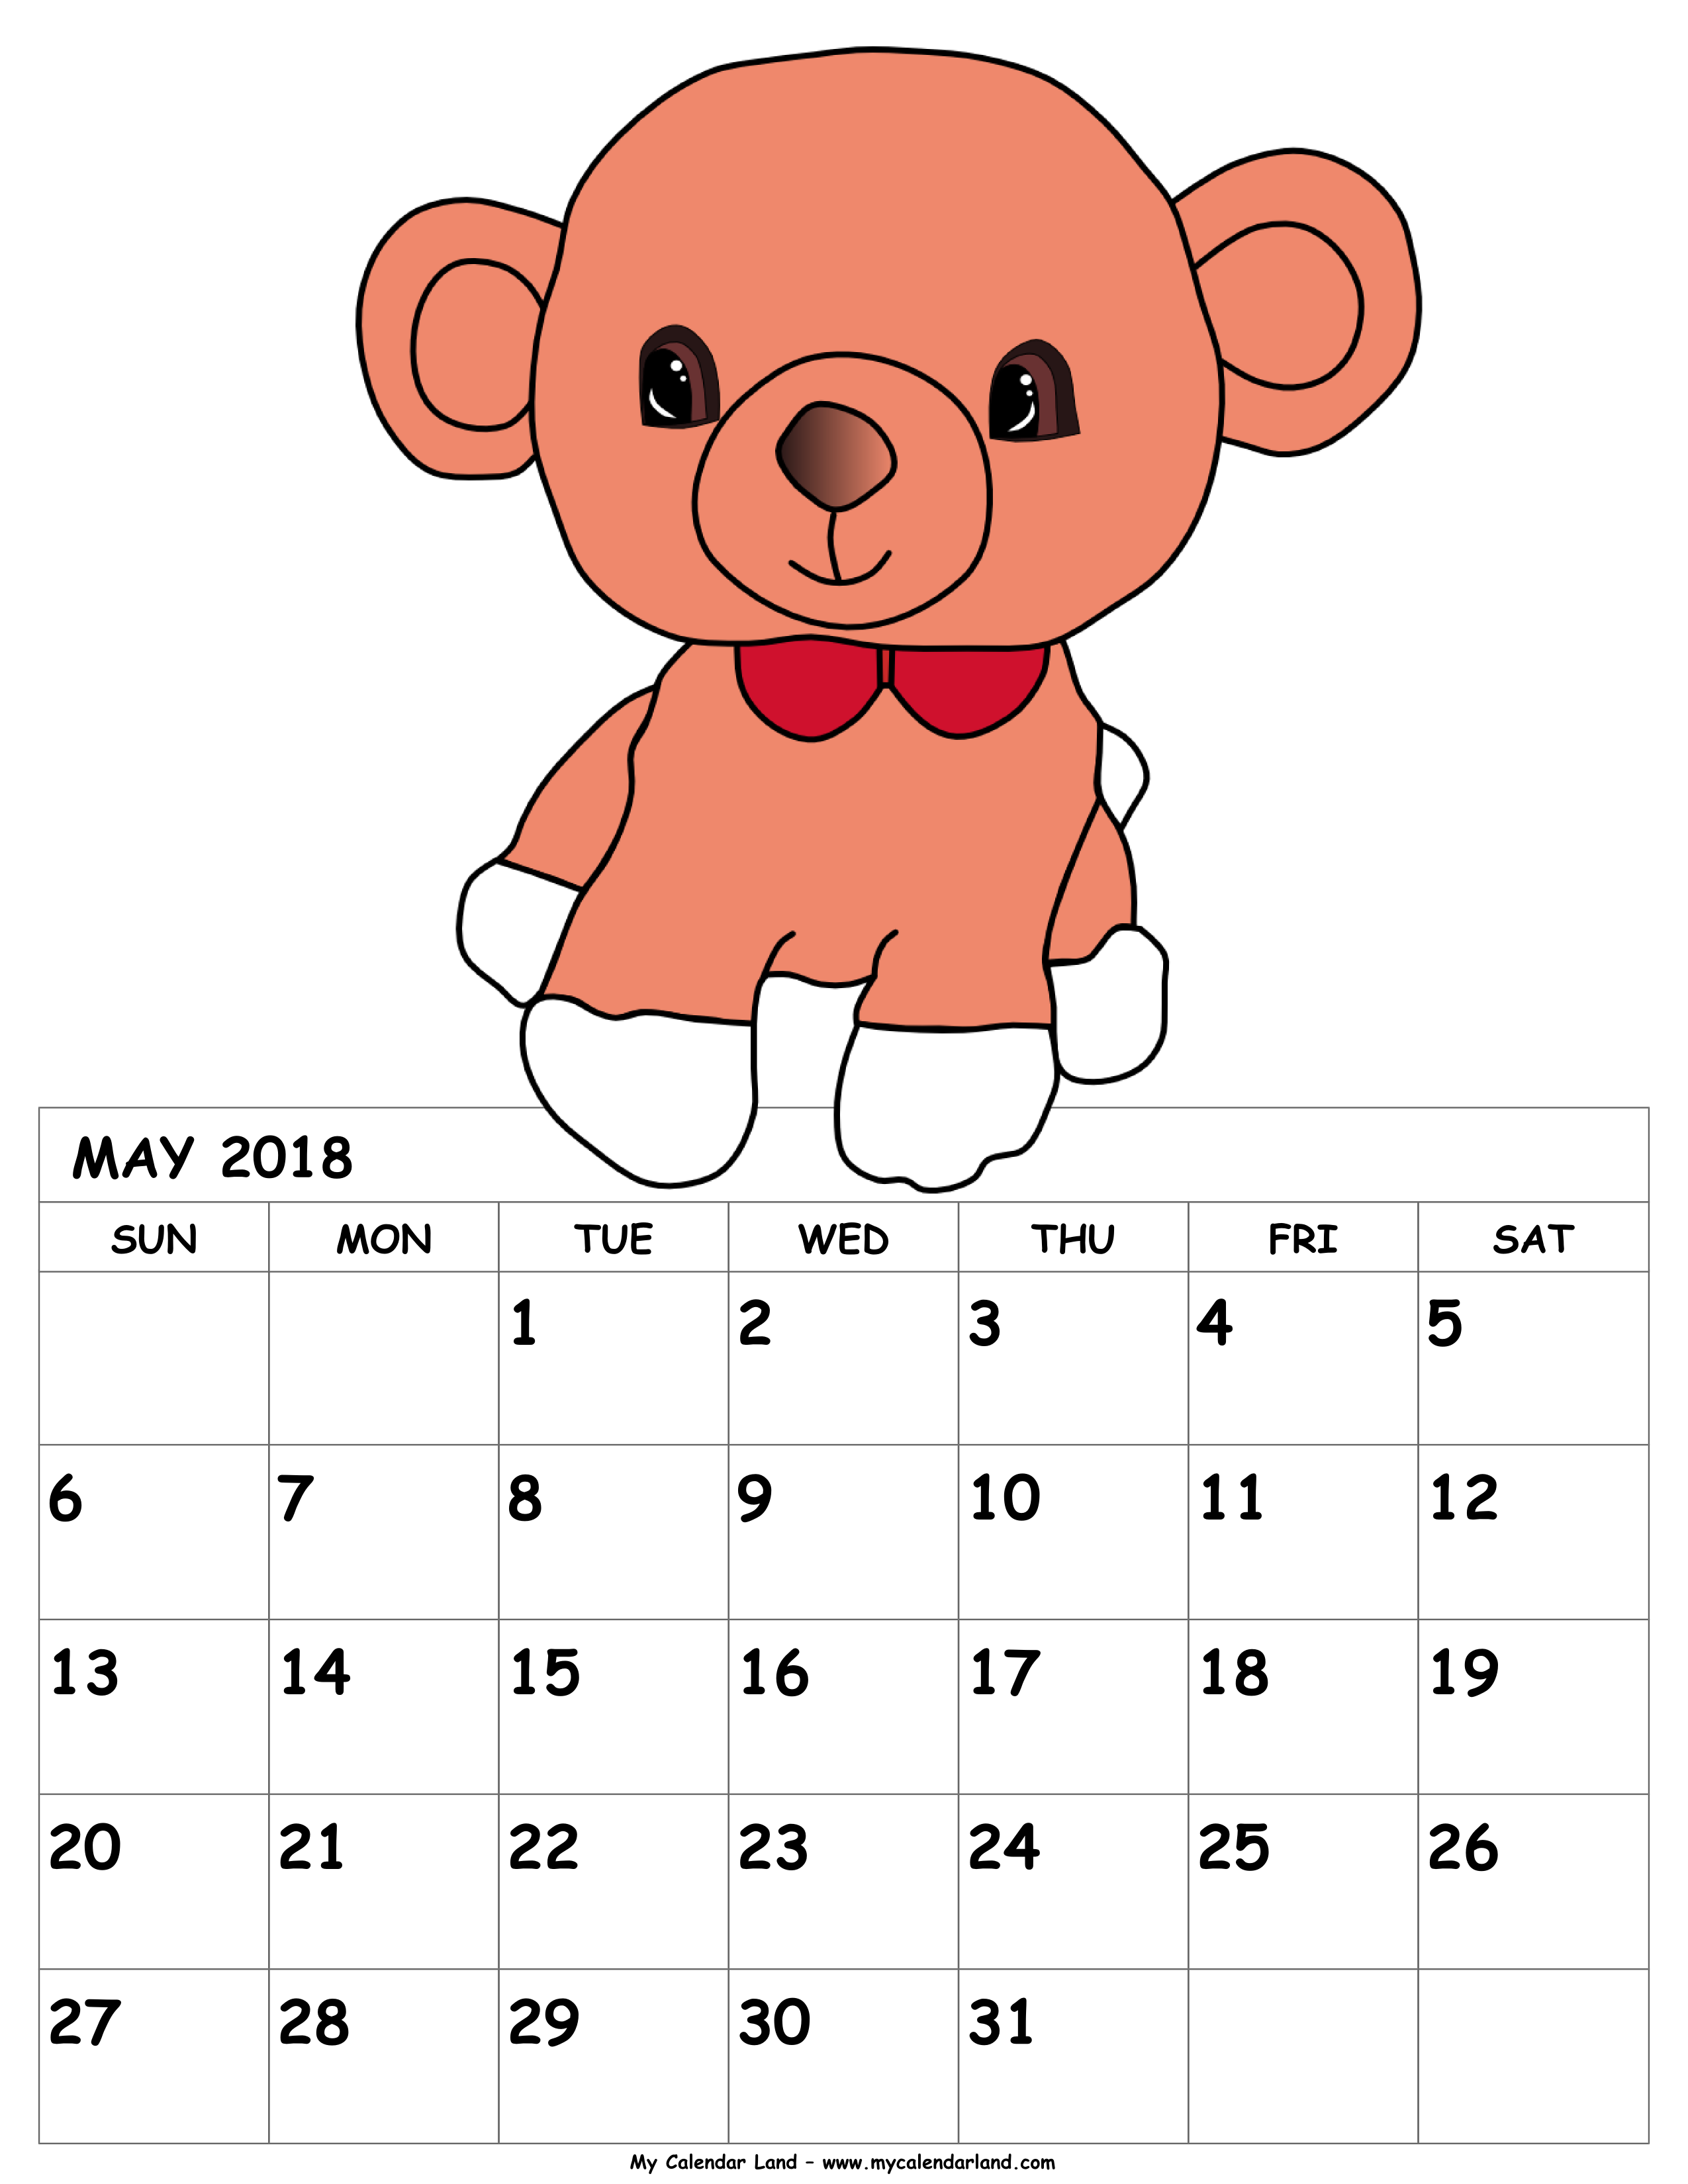 Monthly calendar clipart may clip art royalty free download May 2018 Calendar - My Calendar Land clip art royalty free download